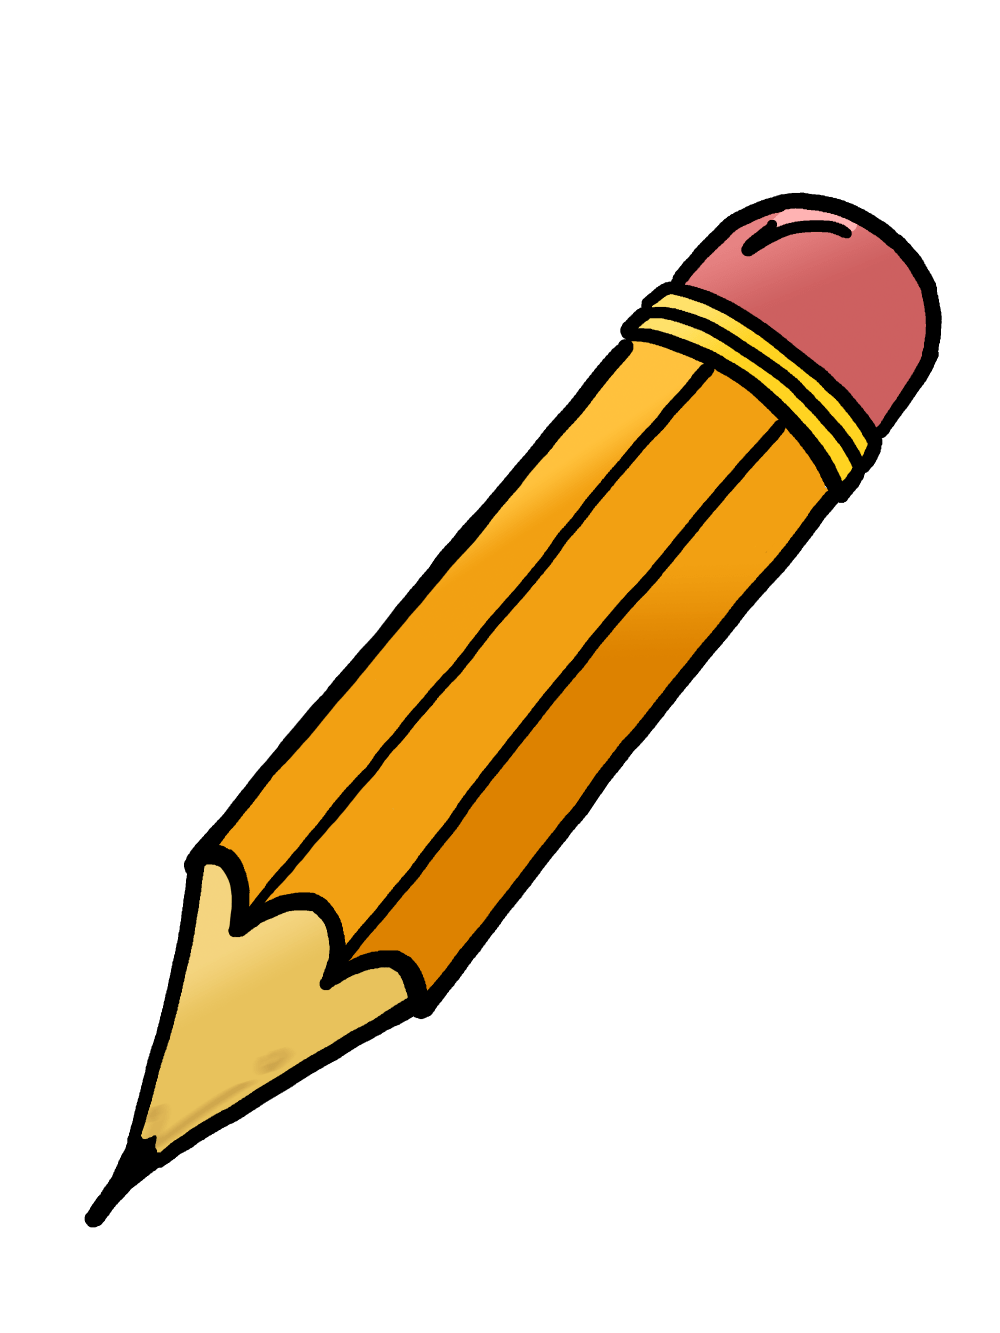 medium resolution of paper and pencil pencil and paper clipart cliparts and others art inspiration